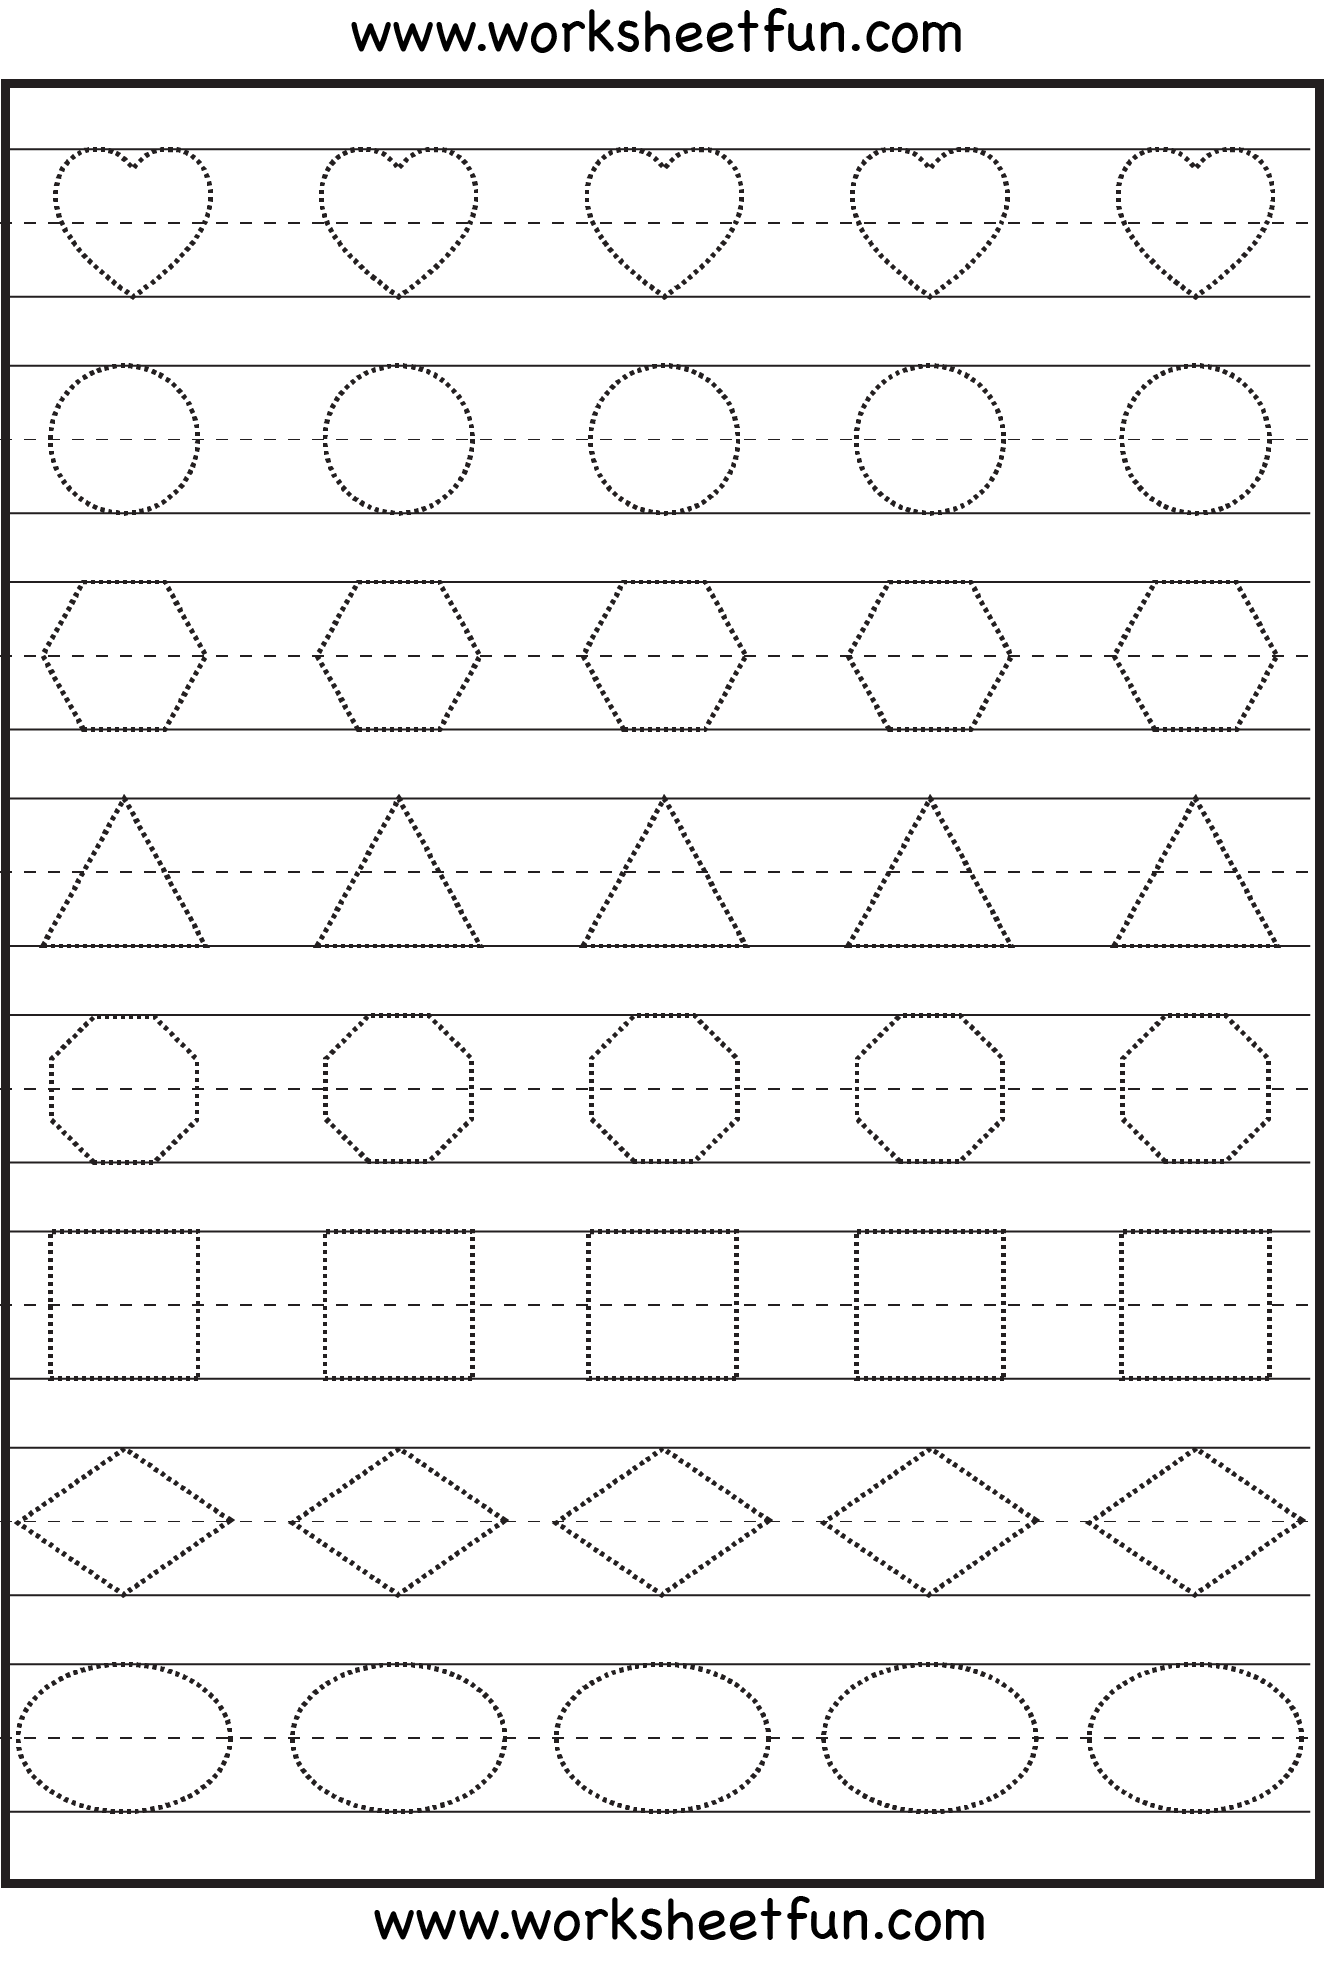 Printables Printable Worksheets For Preschoolers prewriting worksheets for preschoolers free intrepidpath 5 best images of toddler activity writing printable pre